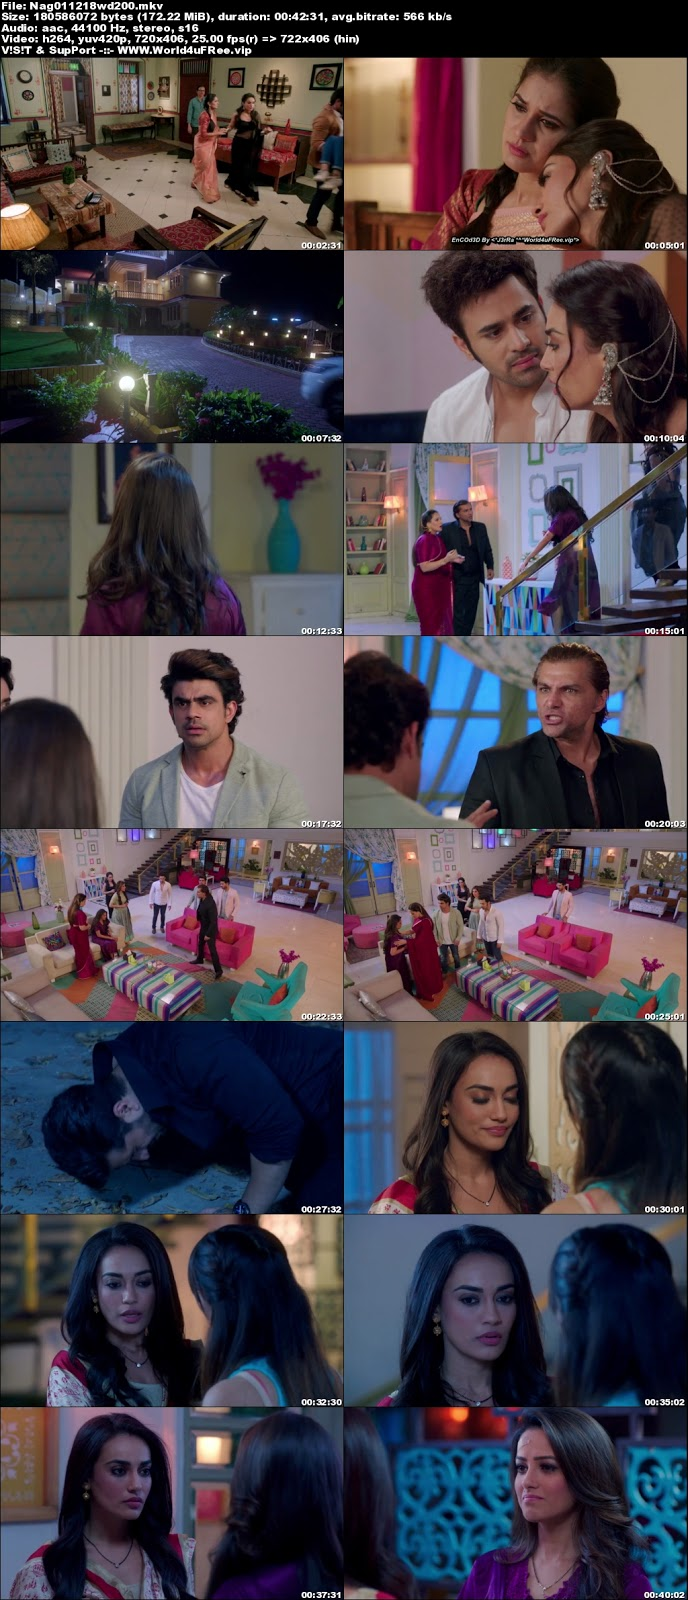 Naagin Season 3 2018 Episode 53 WEBRip 480p 200Mb x264world4ufree.vip tv show Naagin Season 3 hindi tv show Naagin Season 3 Colours tv show compressed small size free download or watch online at world4ufree.vip